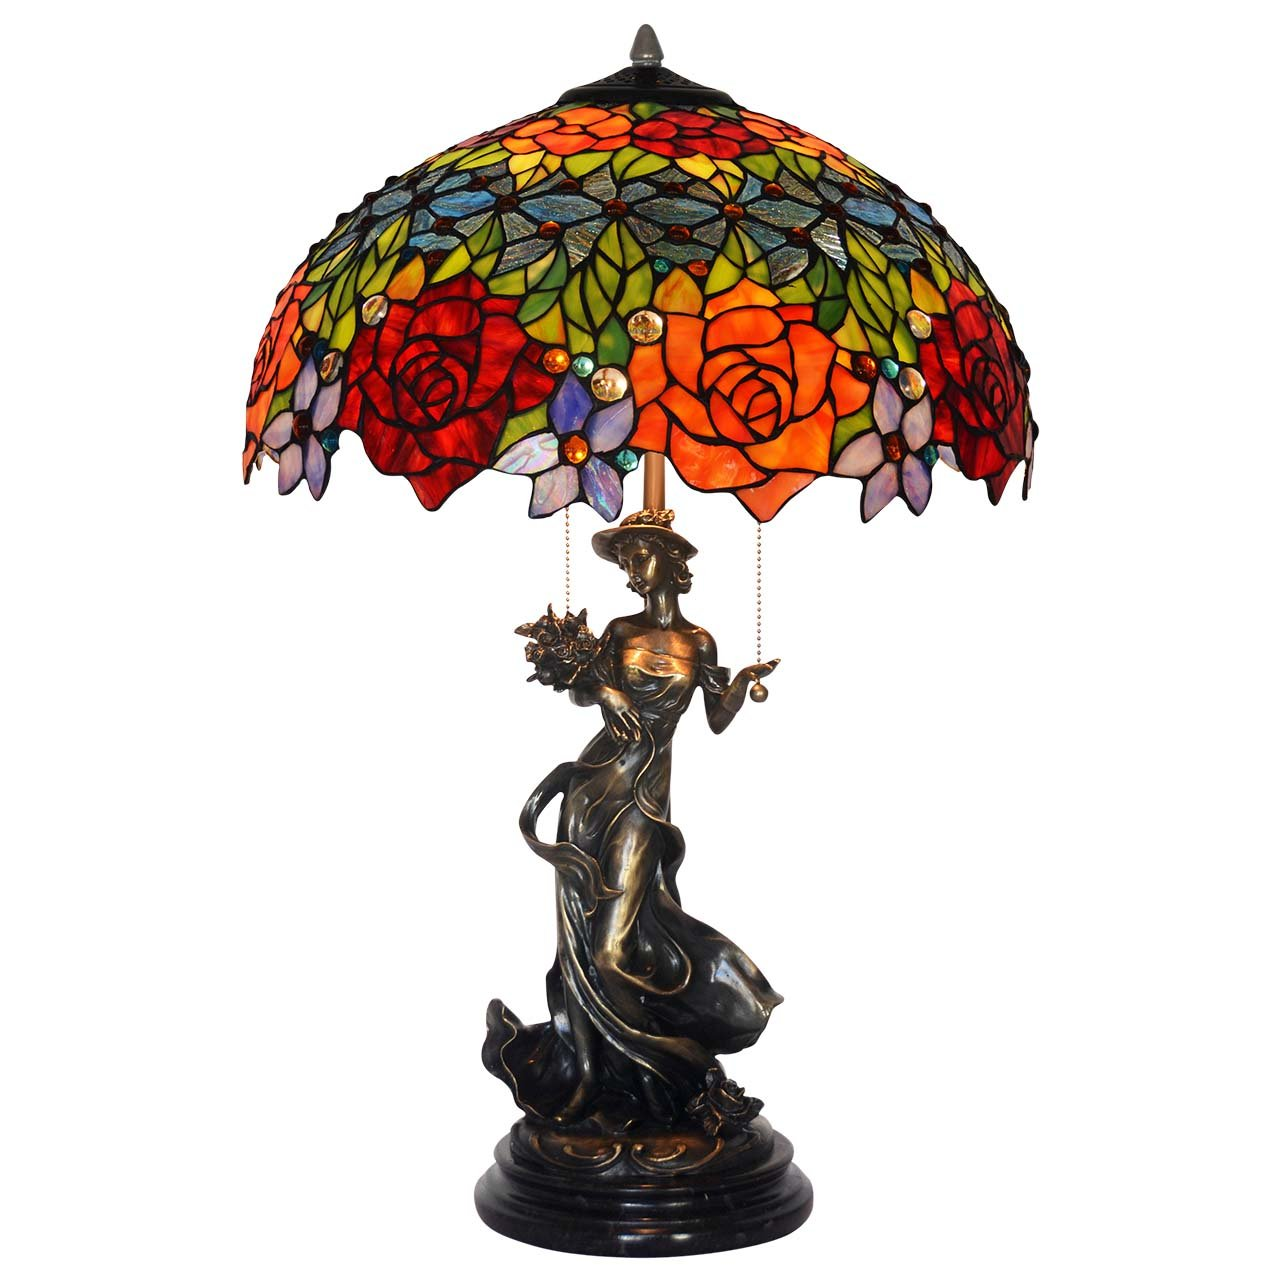 Bieye L10443 18-inches Rose Tiffany Style Stained Glass Table Lamp with 100% Brass Beautiful Girl Base